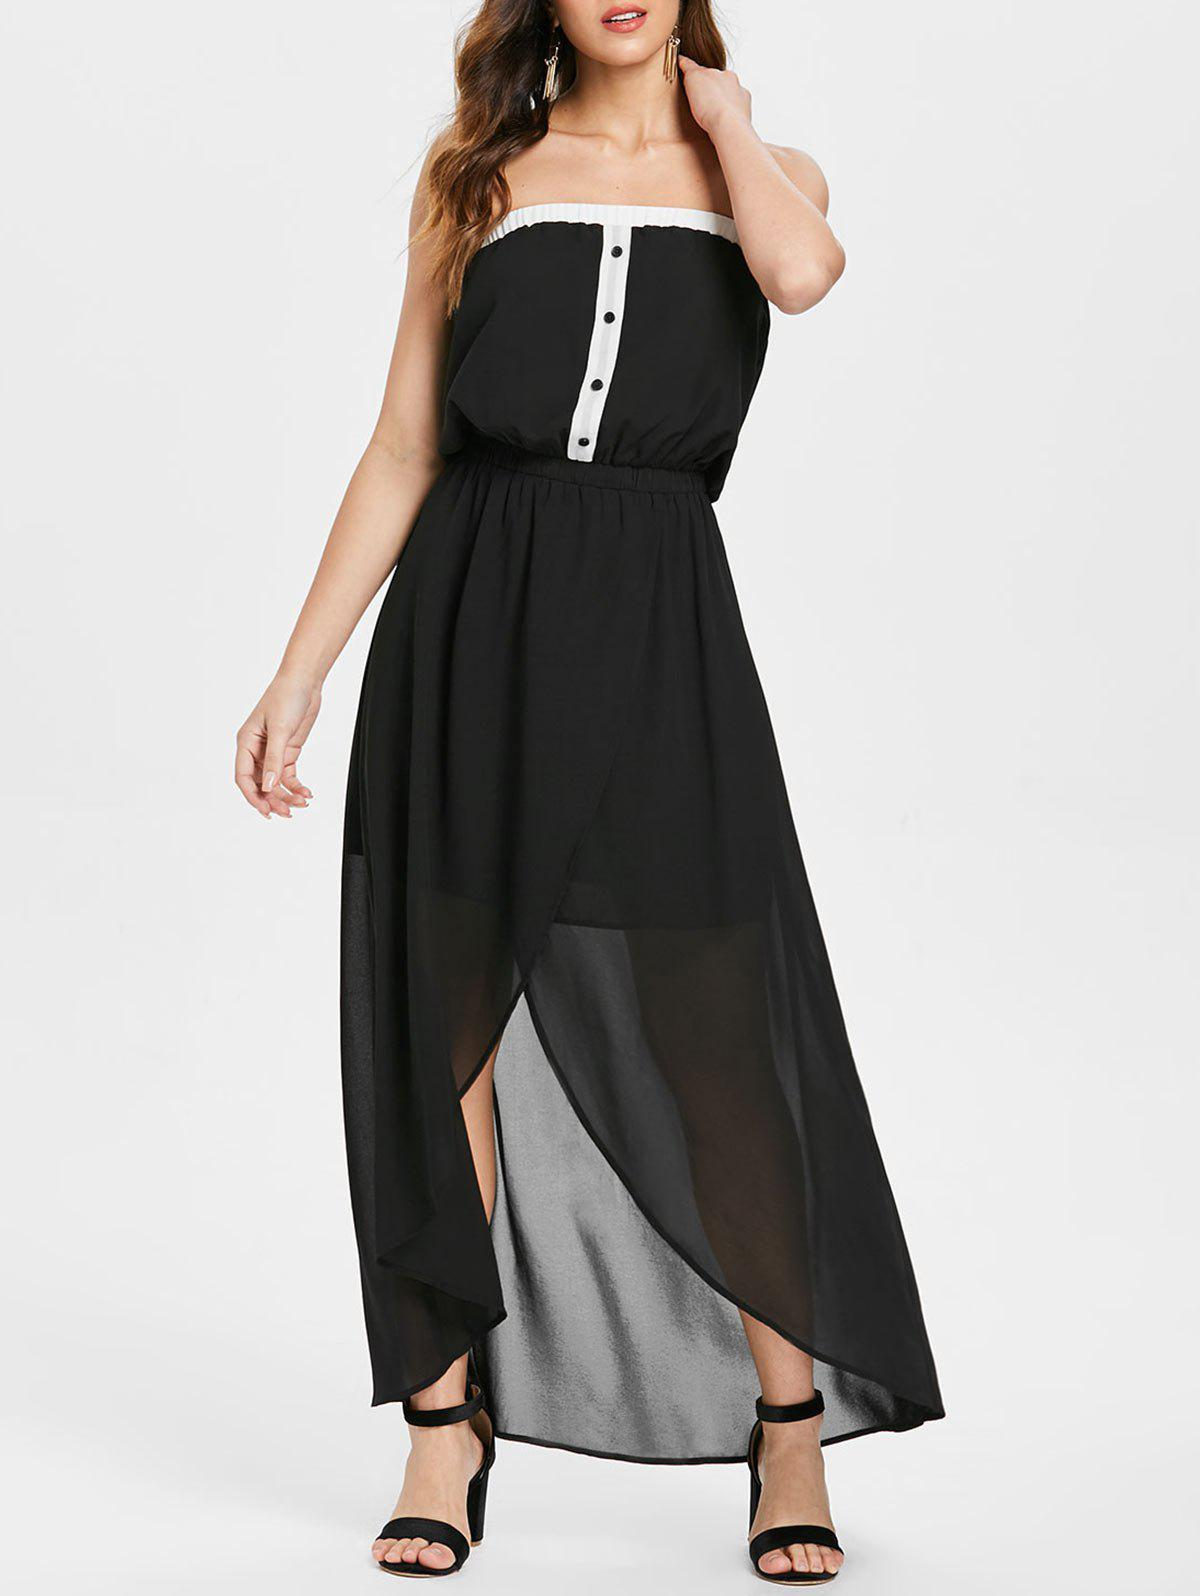 Shop Half Buttons Bandeau Strapless Chiffon Dress